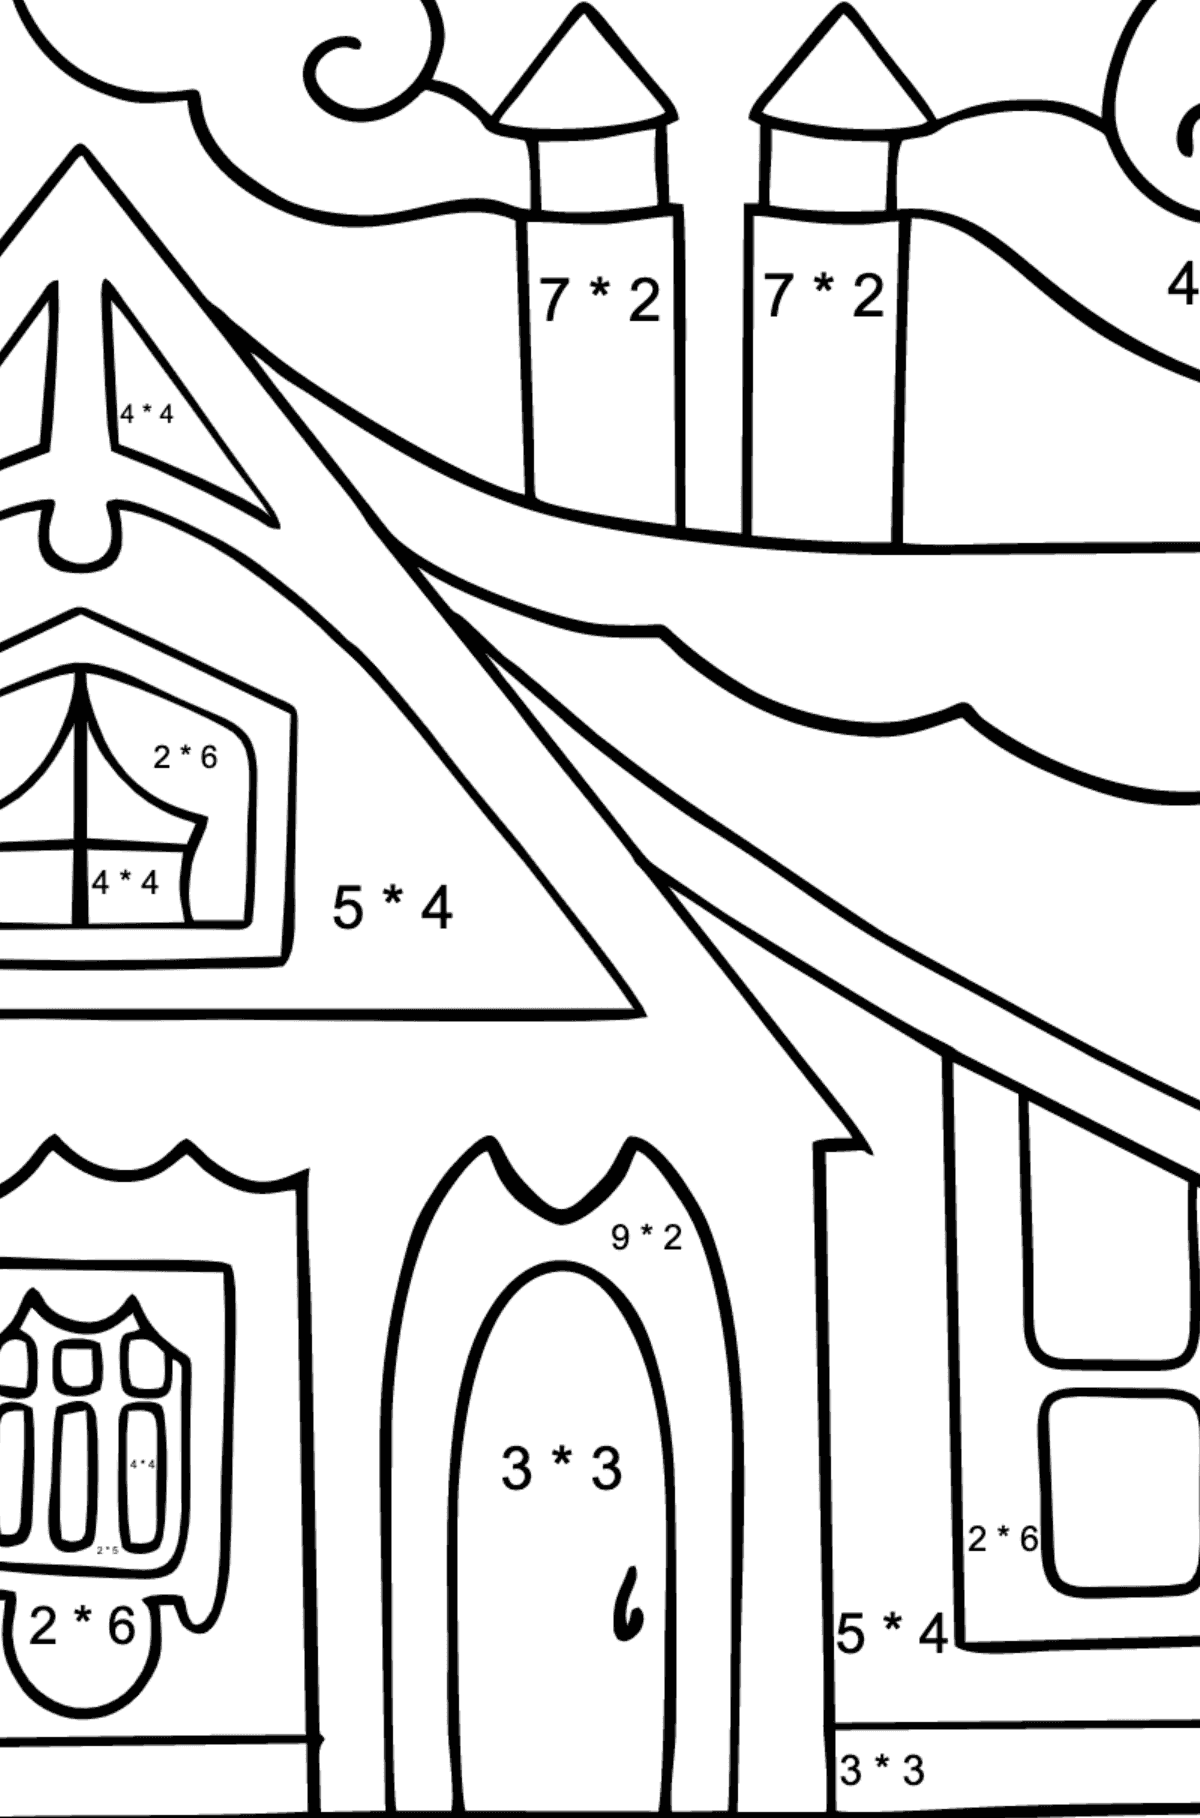 Coloring Page - A Tiny House - Math Coloring - Multiplication for Children